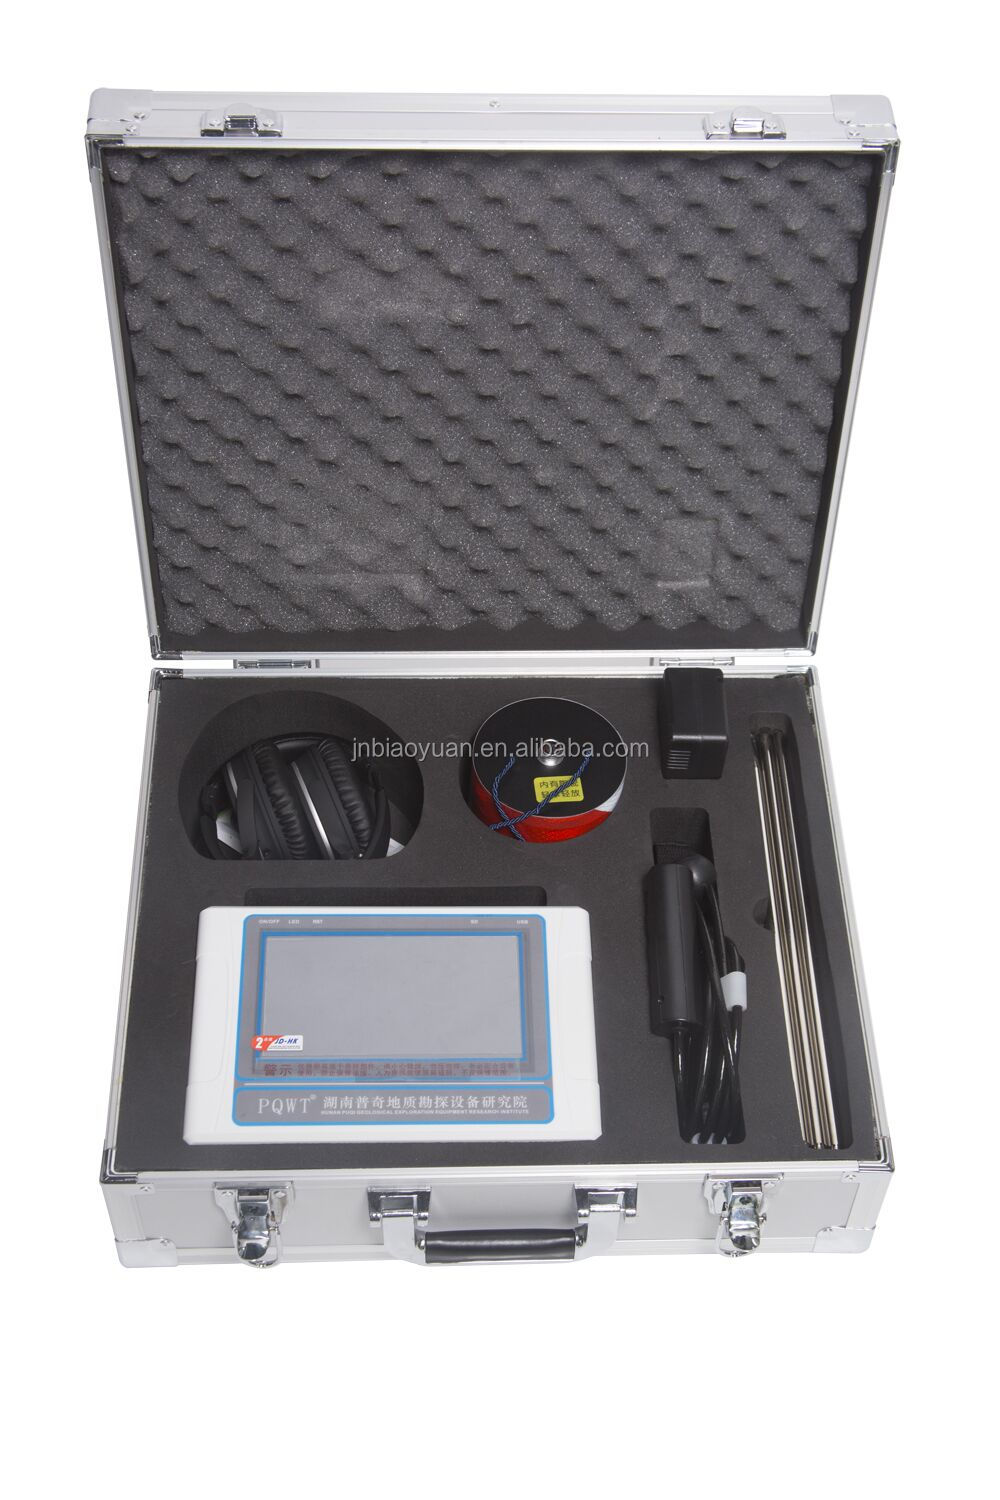 Water Pipe Leak Sensor Detector with Unlimited Live Recording 5M Underground